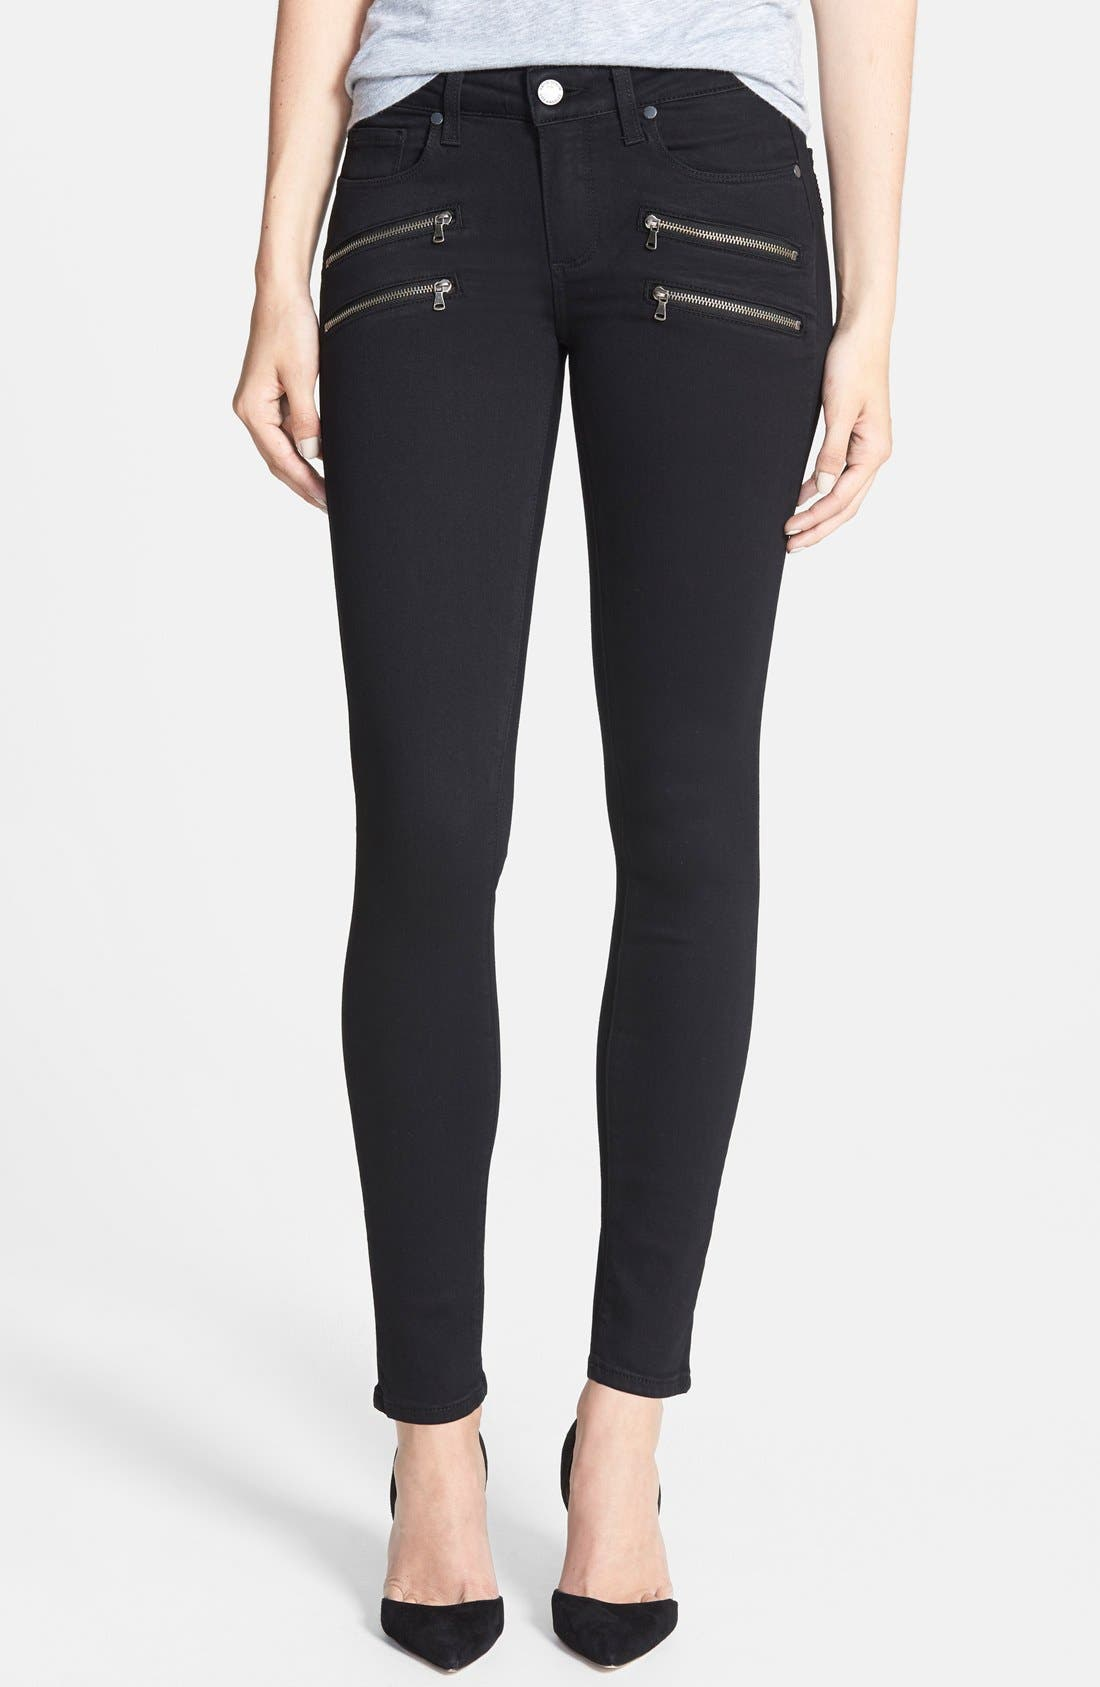 Transcend - Edgemont Ultra Skinny Jeans,                         Main,                         color, Black Shadow